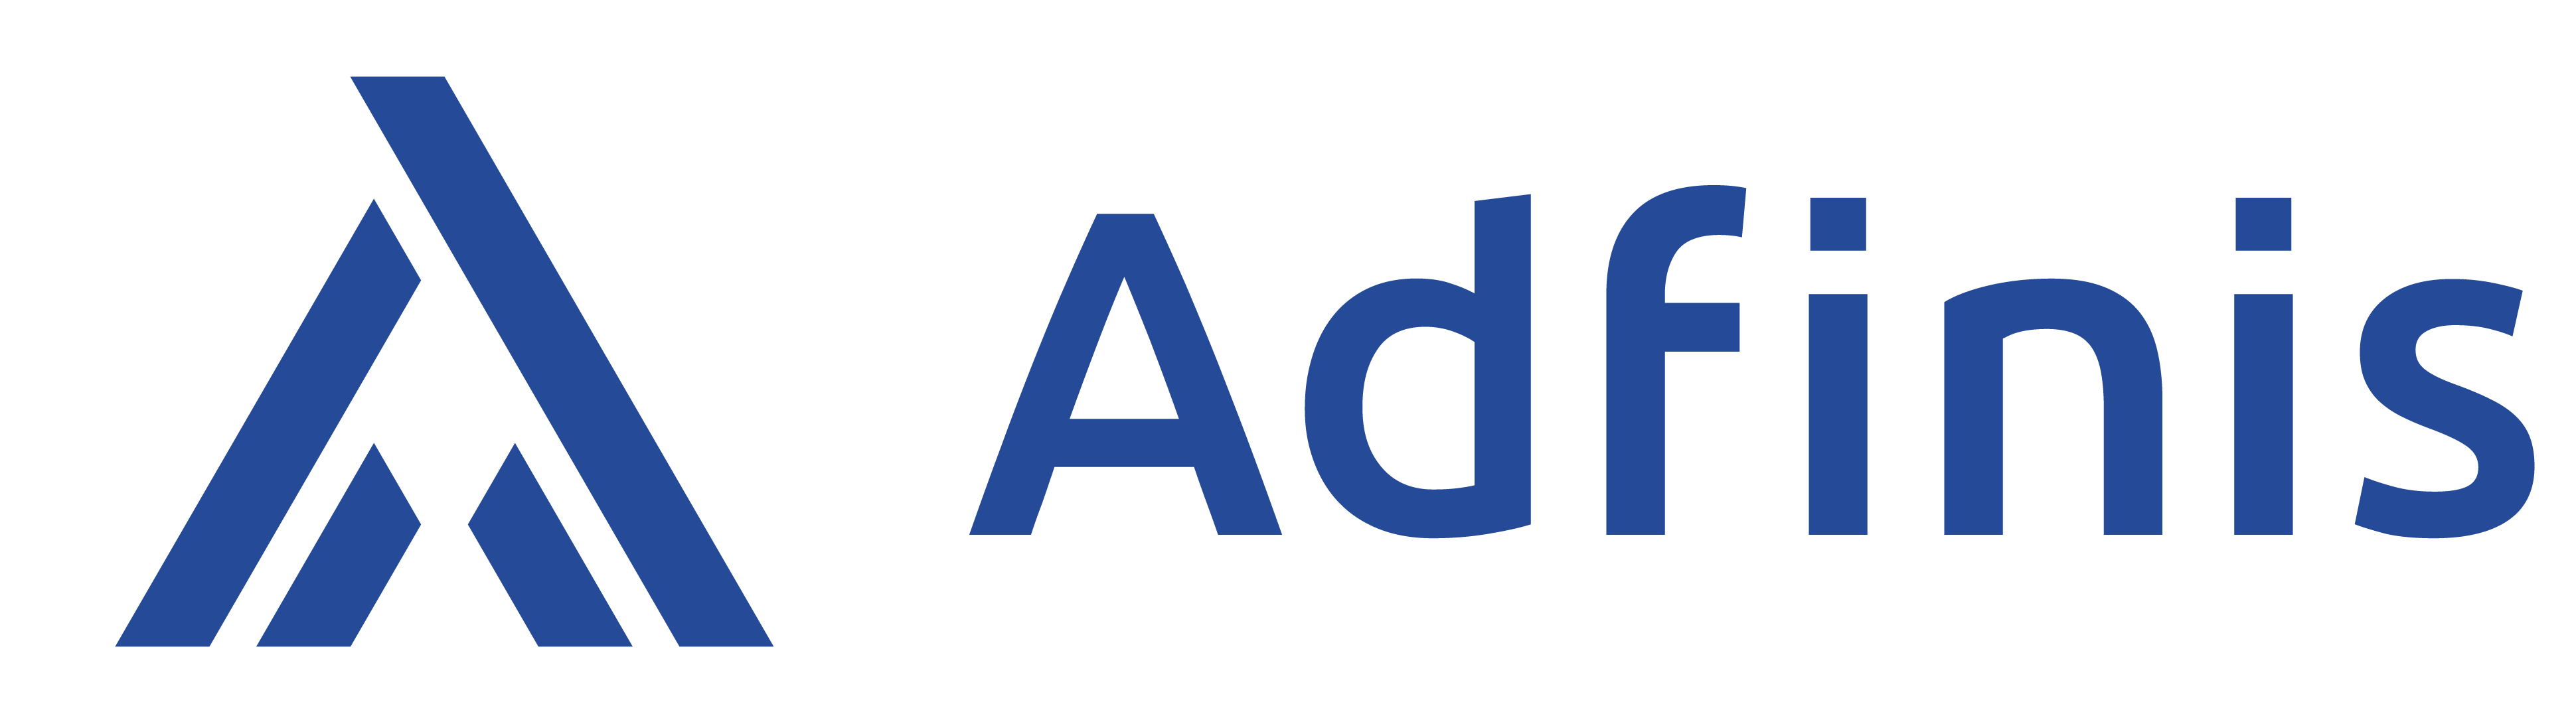 image for Adfinis